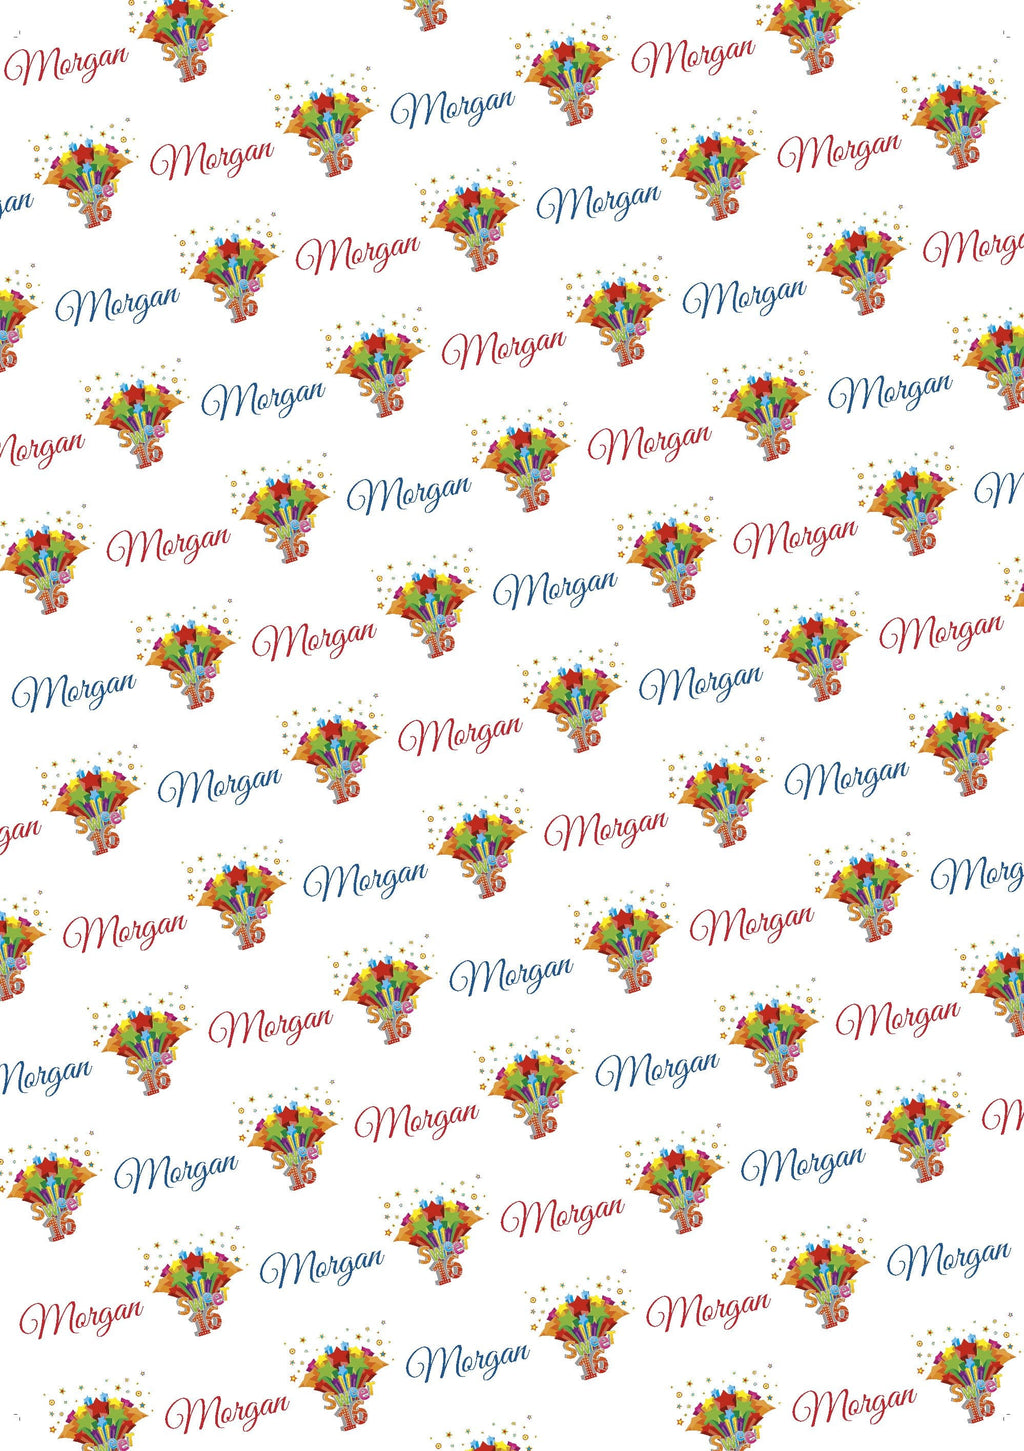 Sweet 16 Personalized Birthday Gift Wrap - Potter's Printing